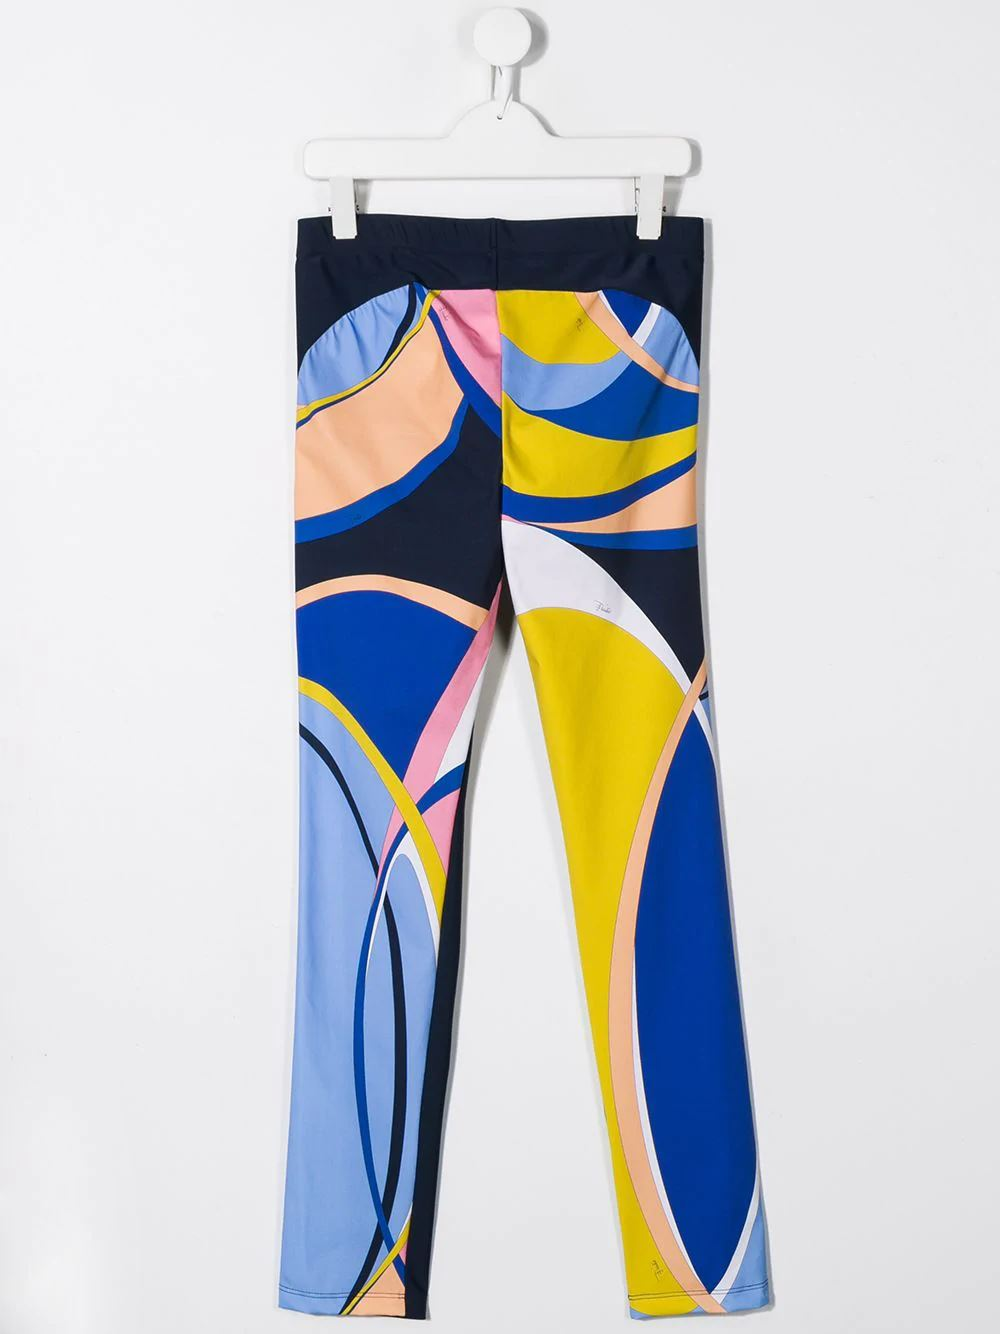 EMILIO PUCCI JUNIOR colour block track pants - Maison De Fashion